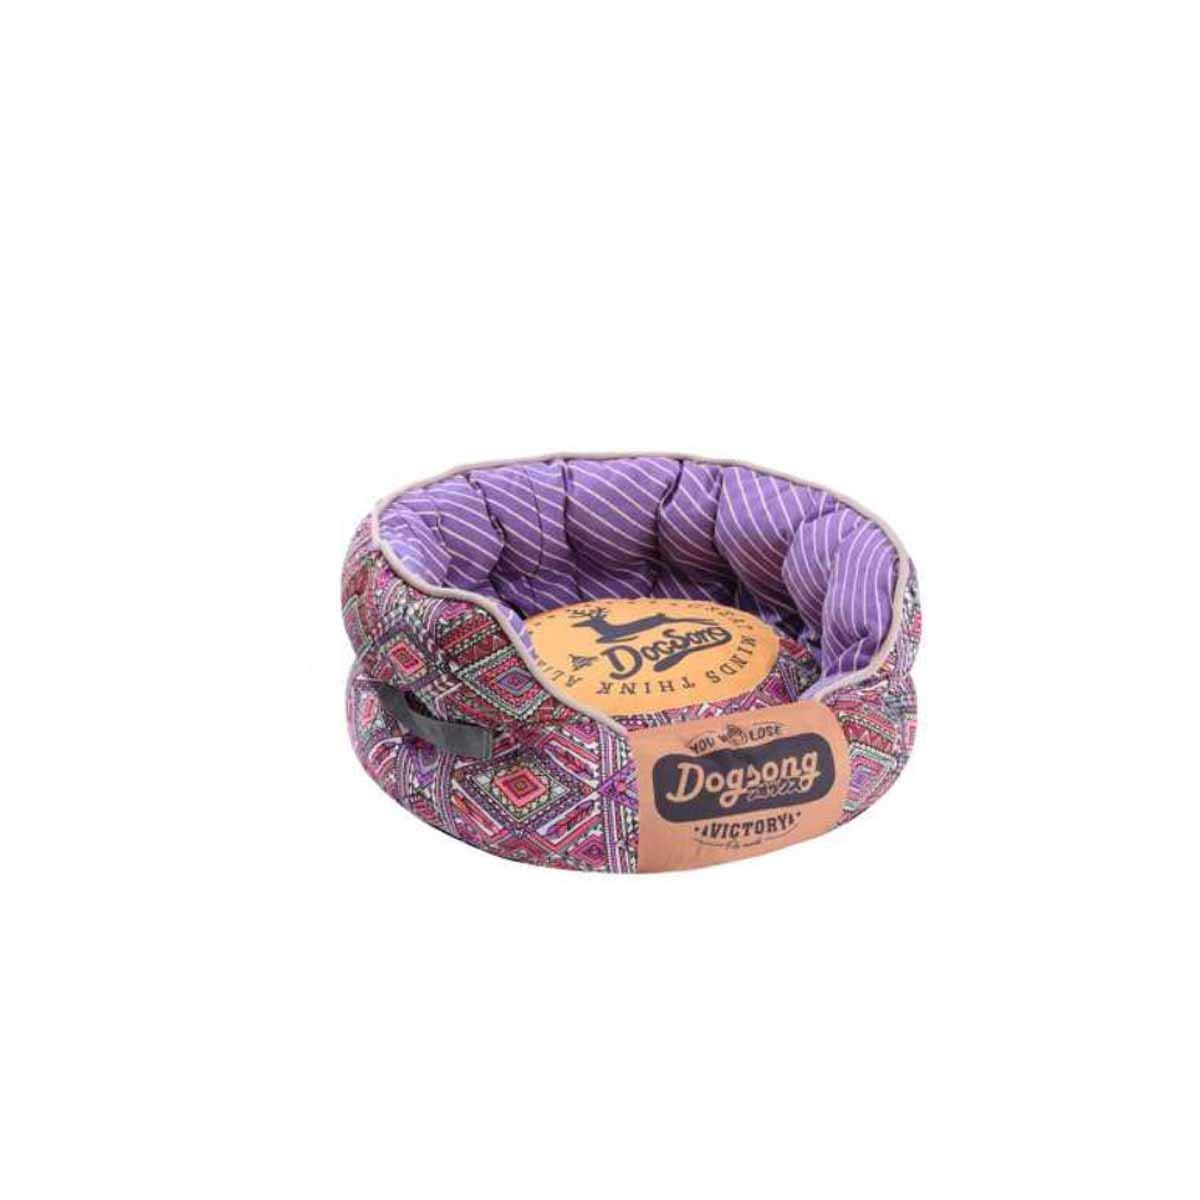 Purple XL Purple XL Muziwenju pet Home, Washable Kennel, Small and Medium Sized Dog Universal, Teddy Kennel, golden Retriever Dog, Dog Warm Dog Bed Labrador, (color   Purple, Size   XL)